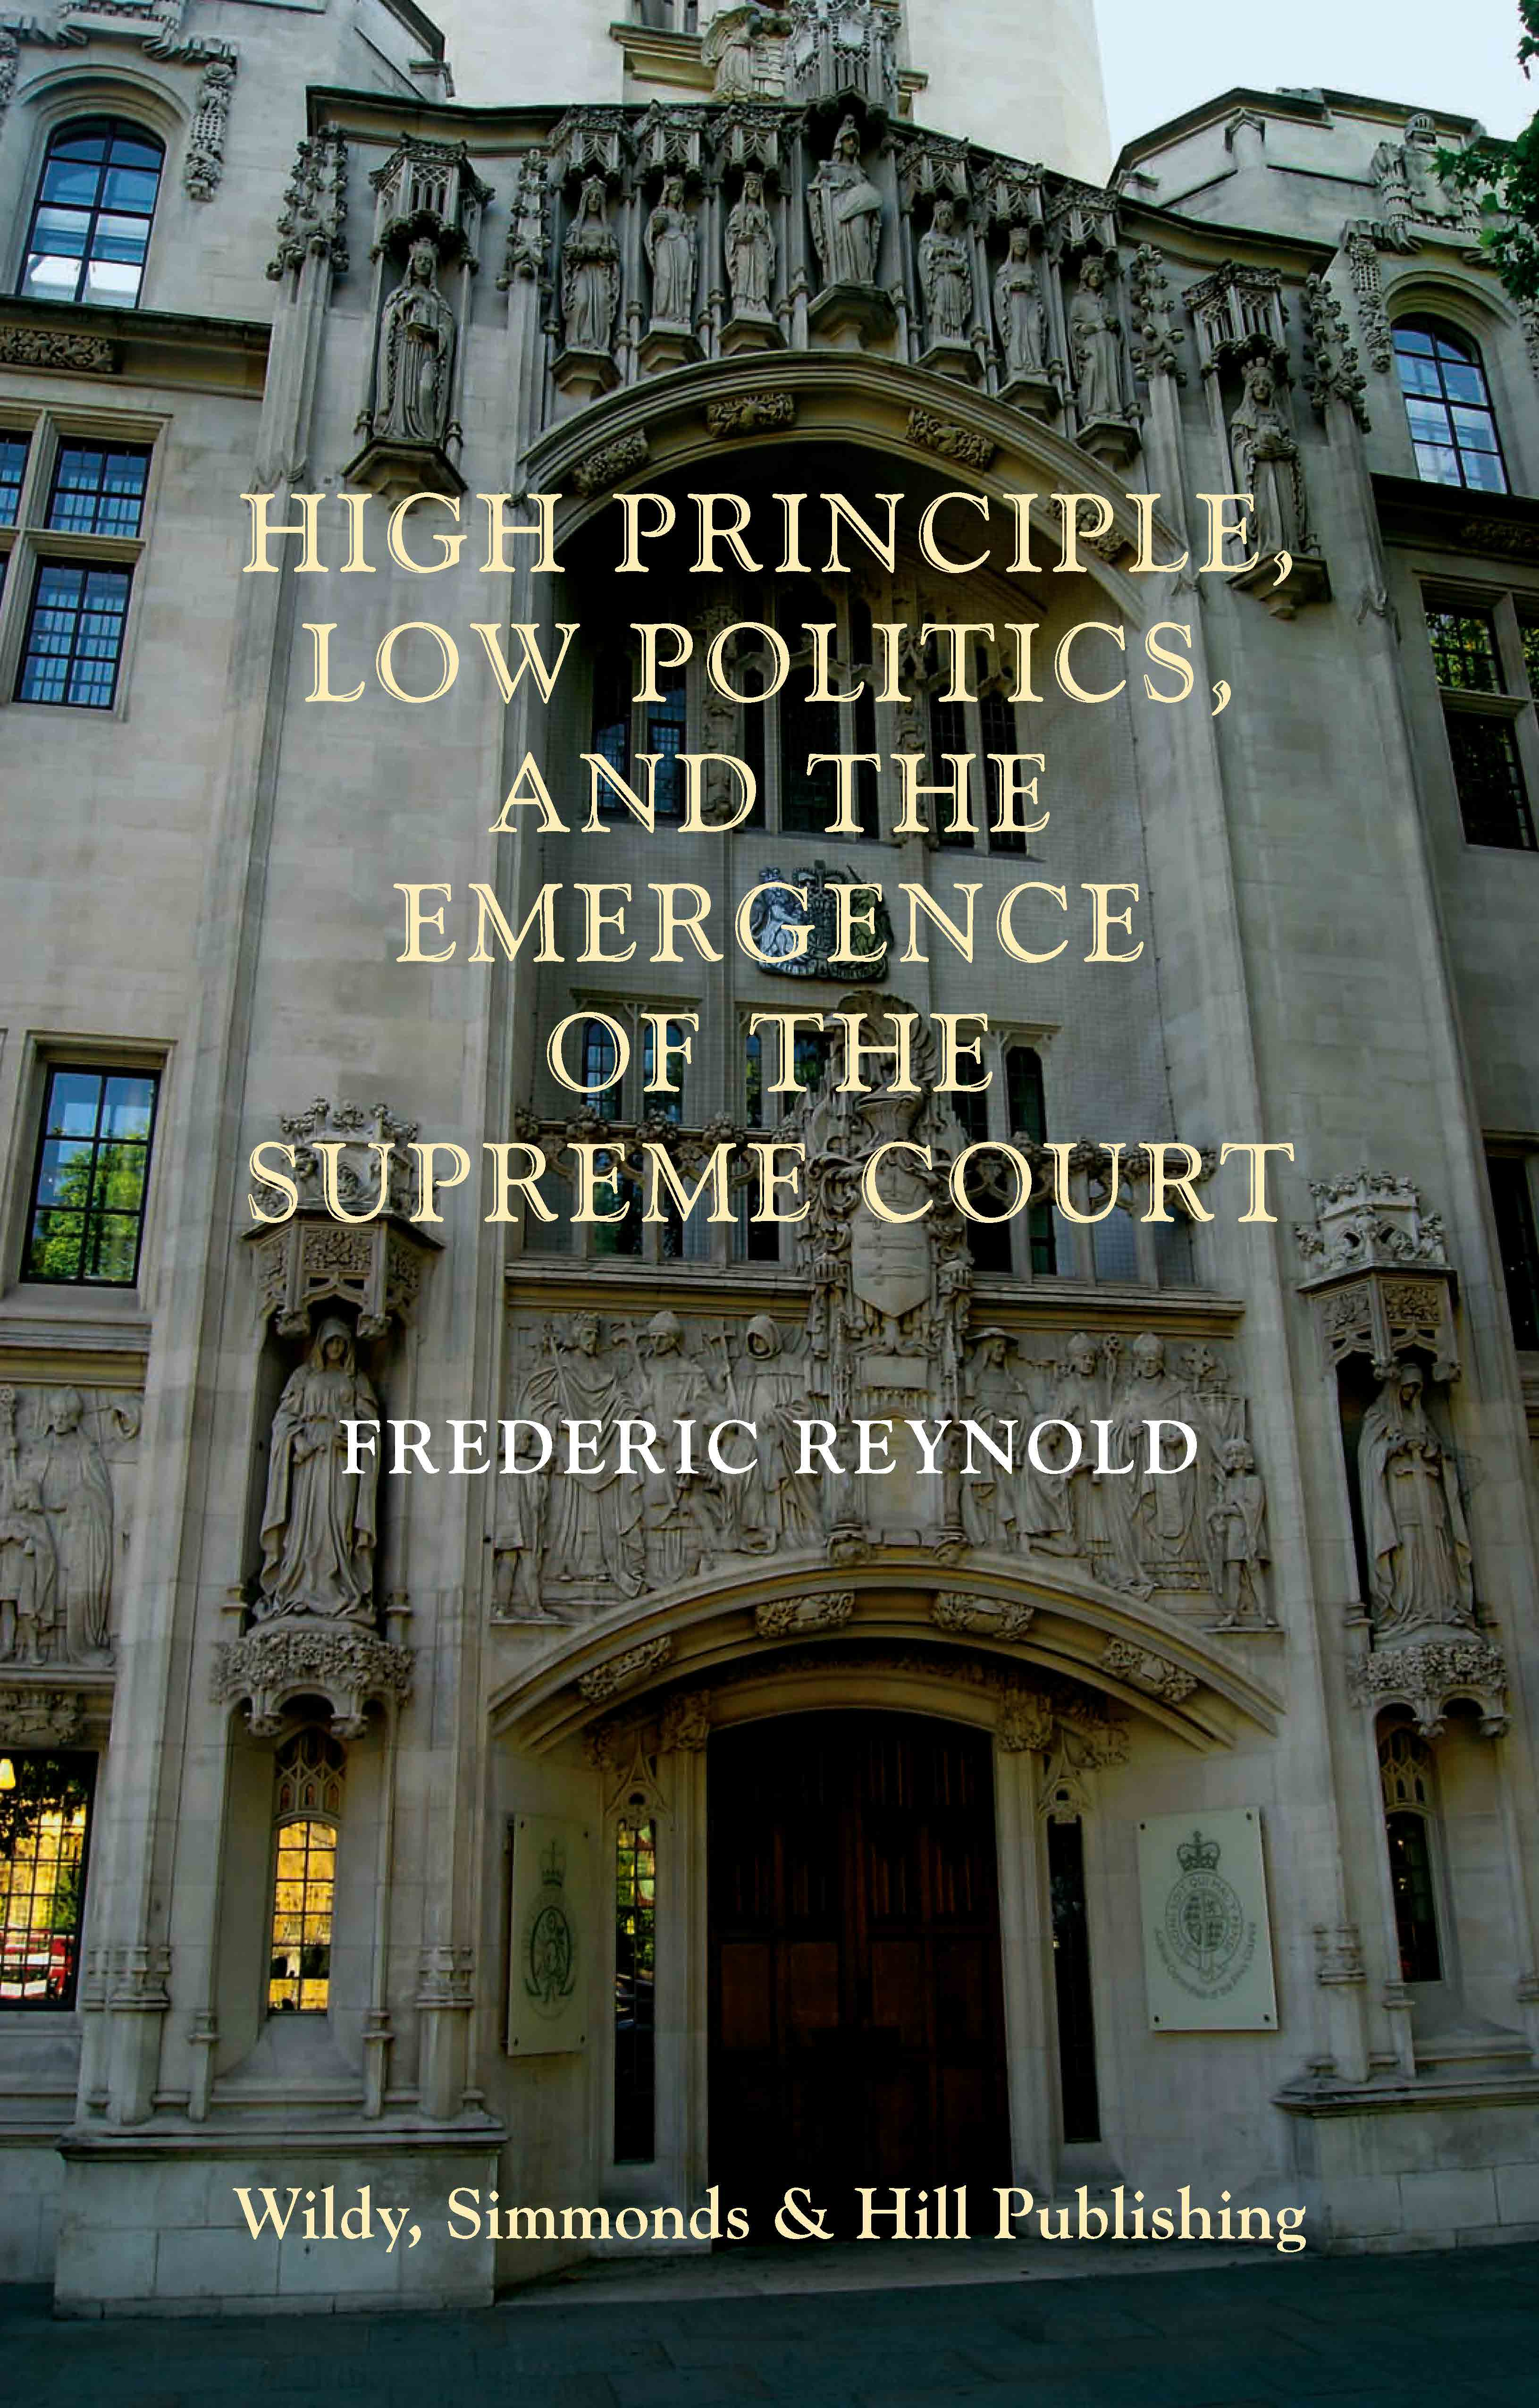 High Principle, Low Politics, and the Emergence of the Supreme Court